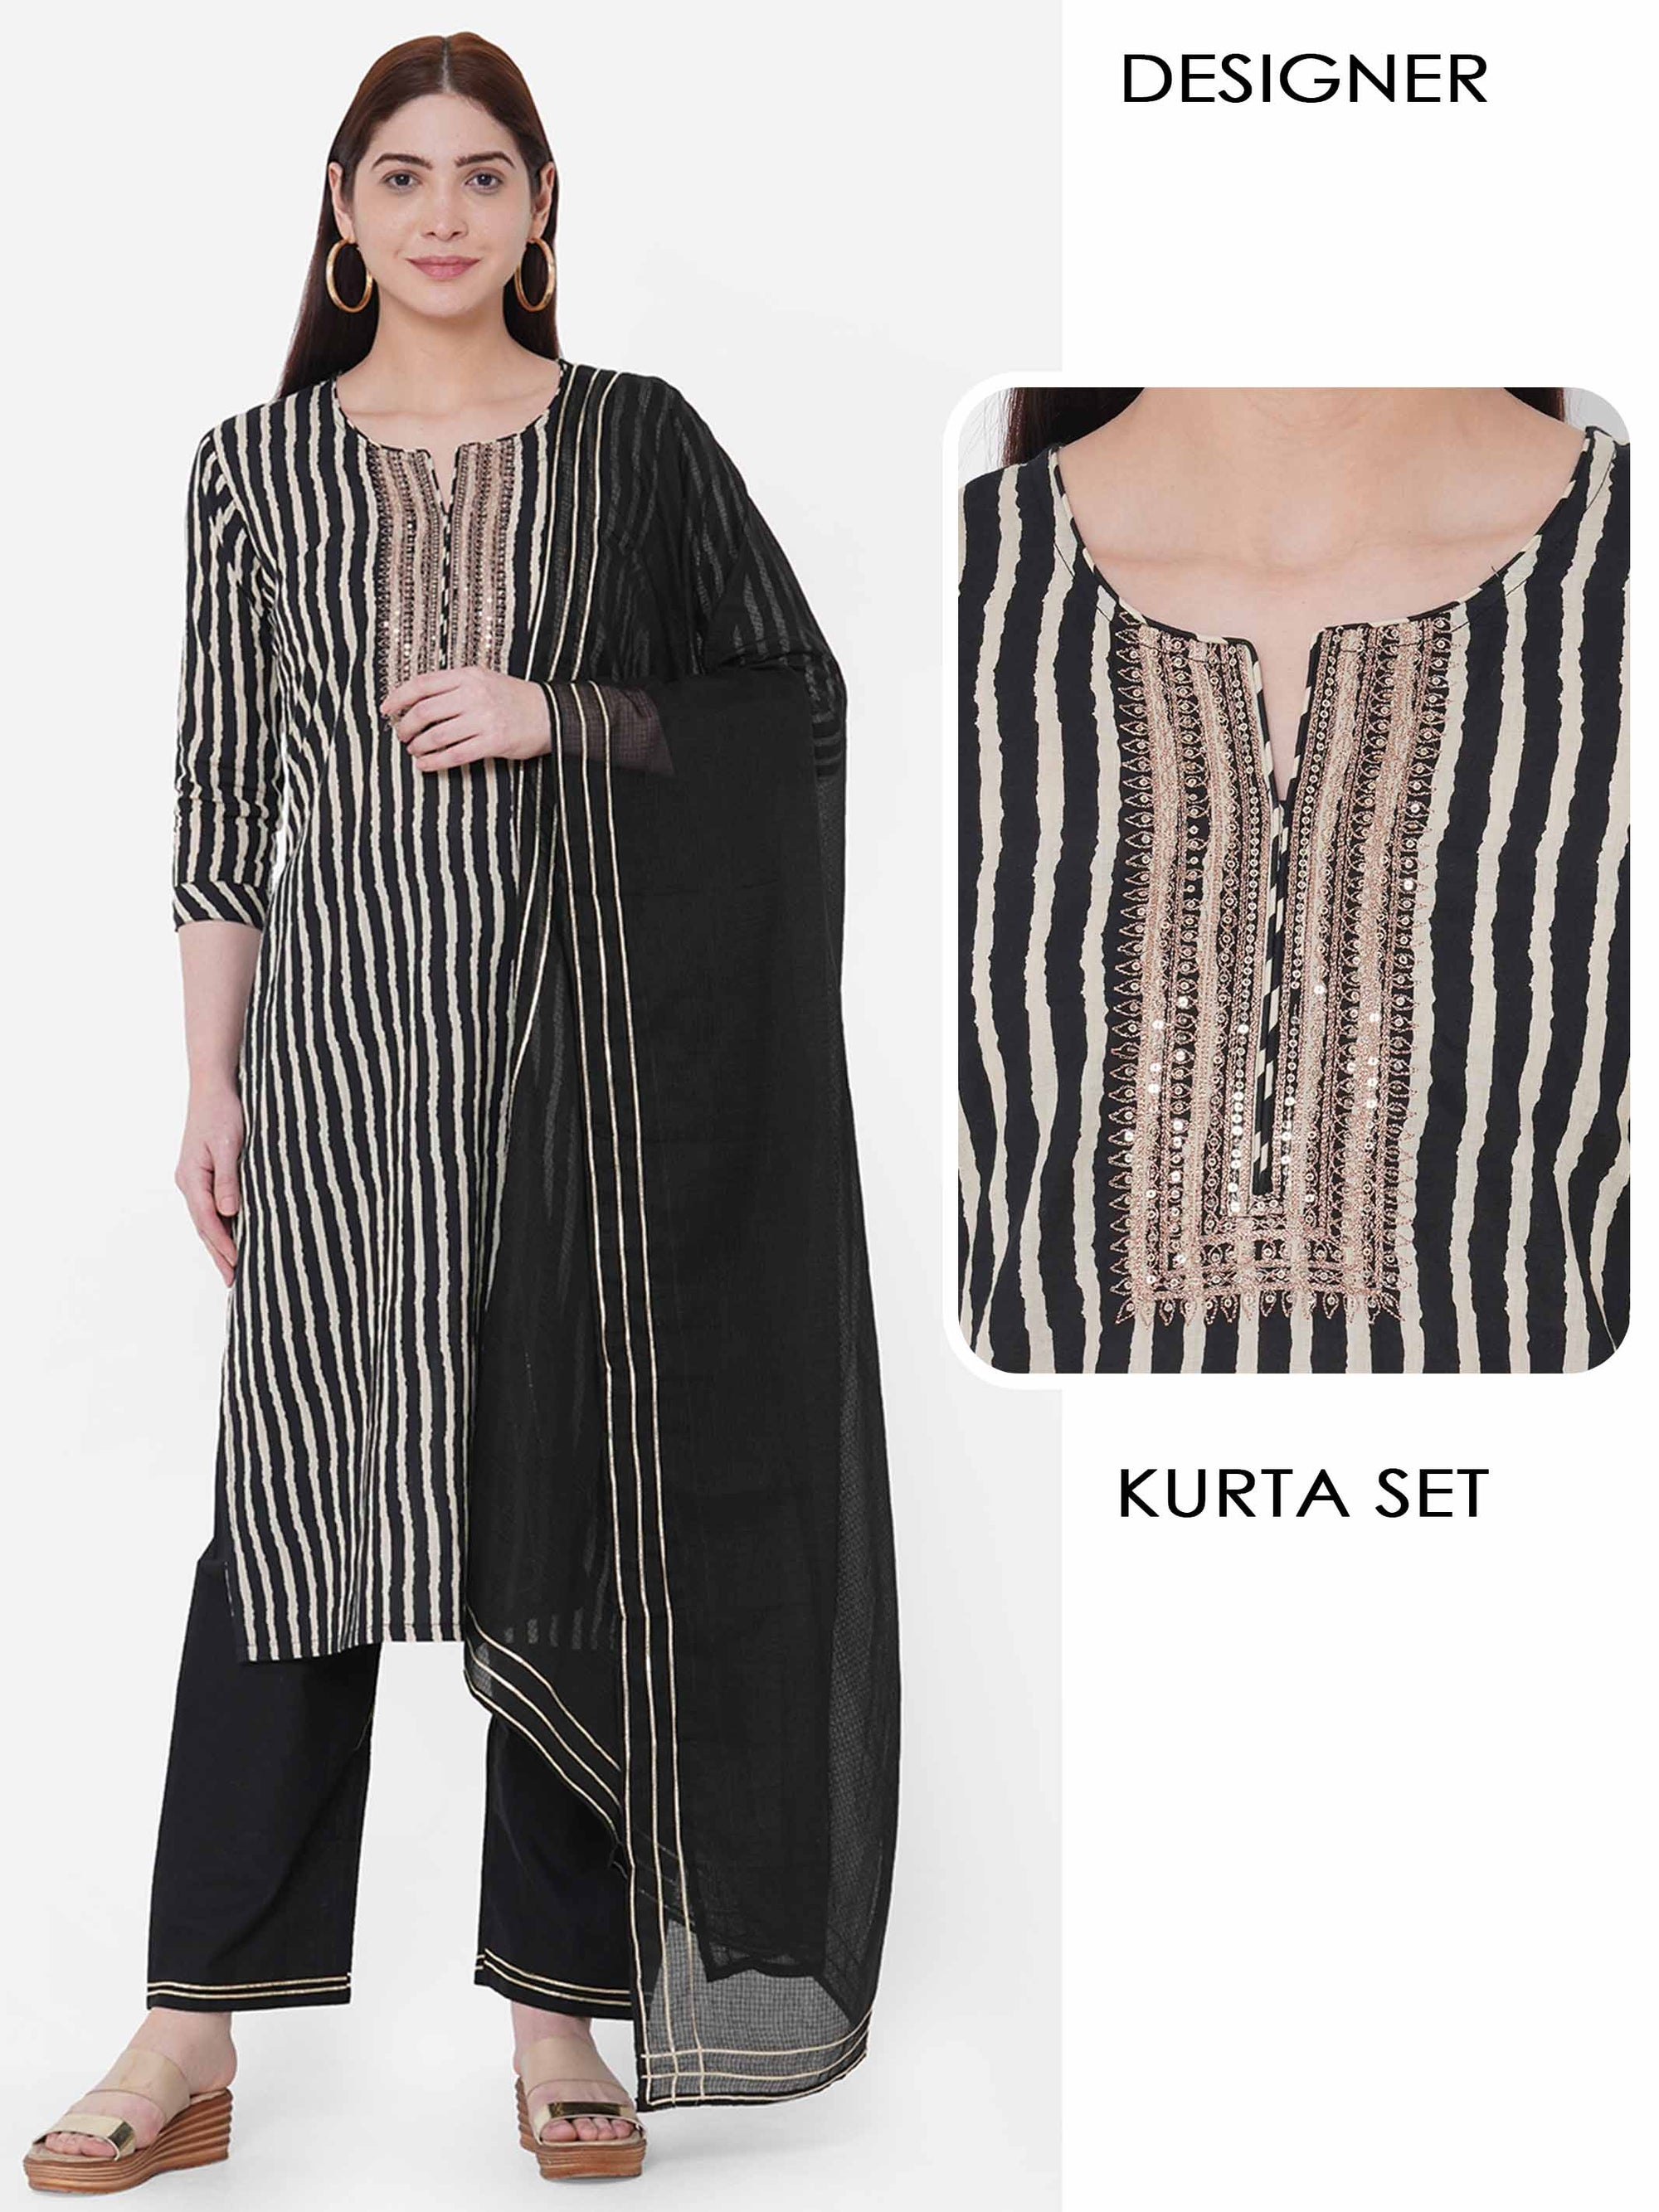 Stripes Printed & Embellished Kurta with Solid Pant with Solid Dupatta – Black